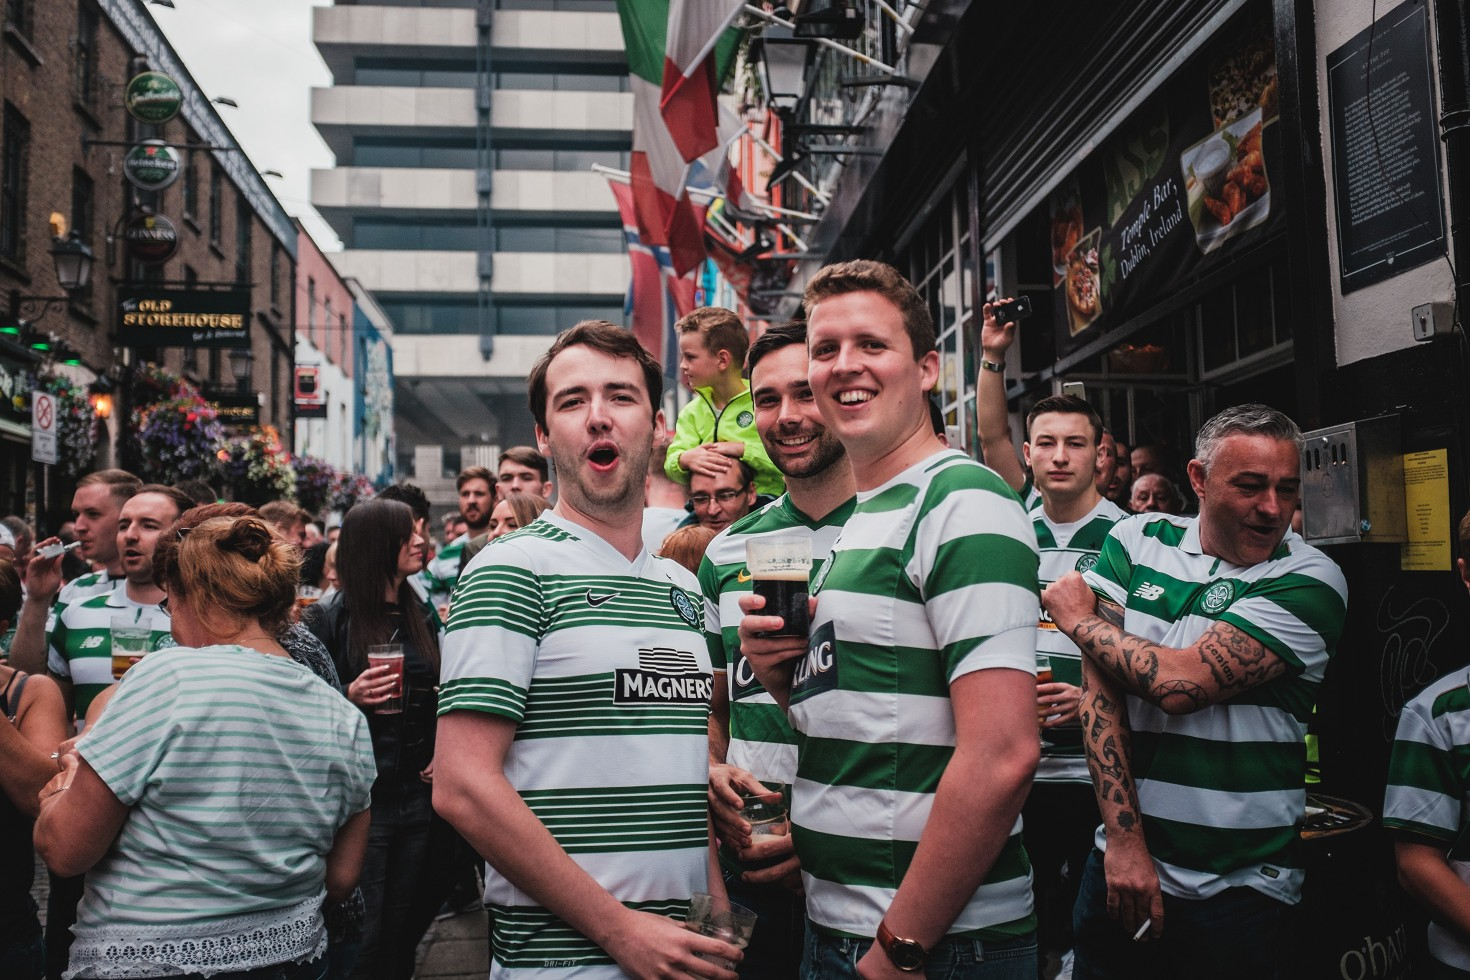 Celtic-Barca-Barcelona-Dublin-Temple-Bar-Aviva-Ireland-Fans (10 von 68)